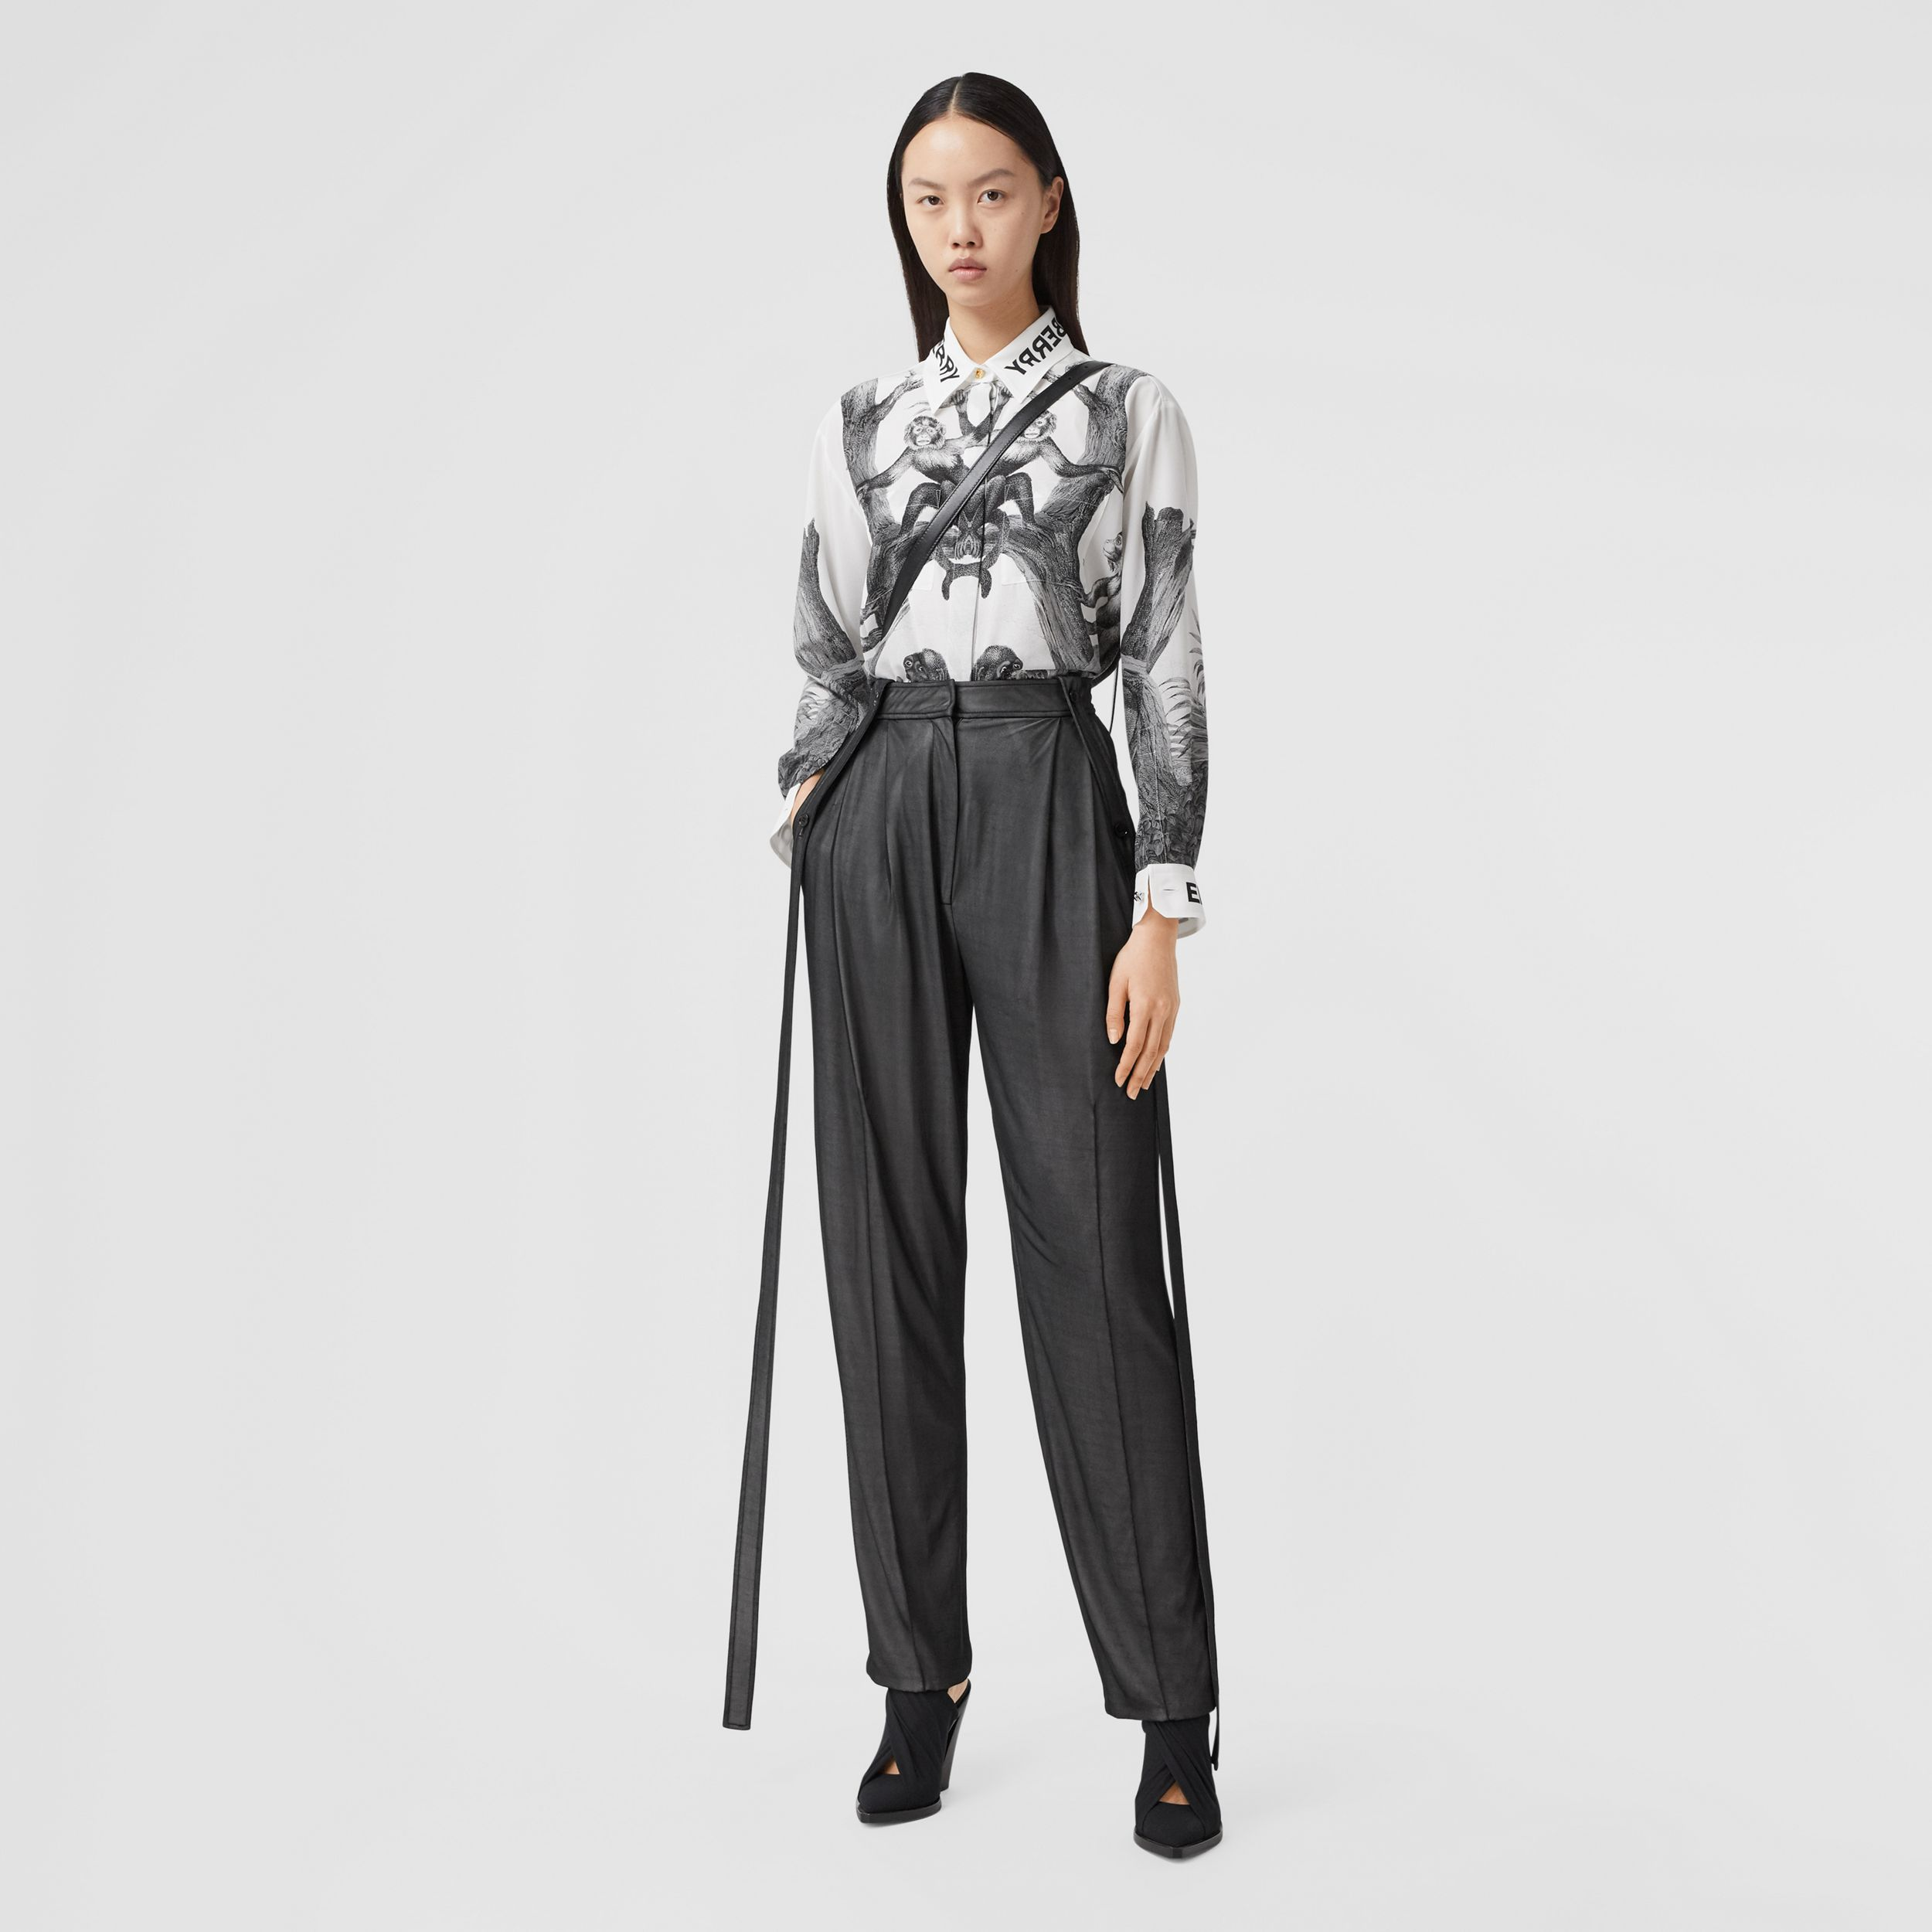 Strap Detail Chiffon and Jersey Tailored Trousers in Black - Women | Burberry - 1